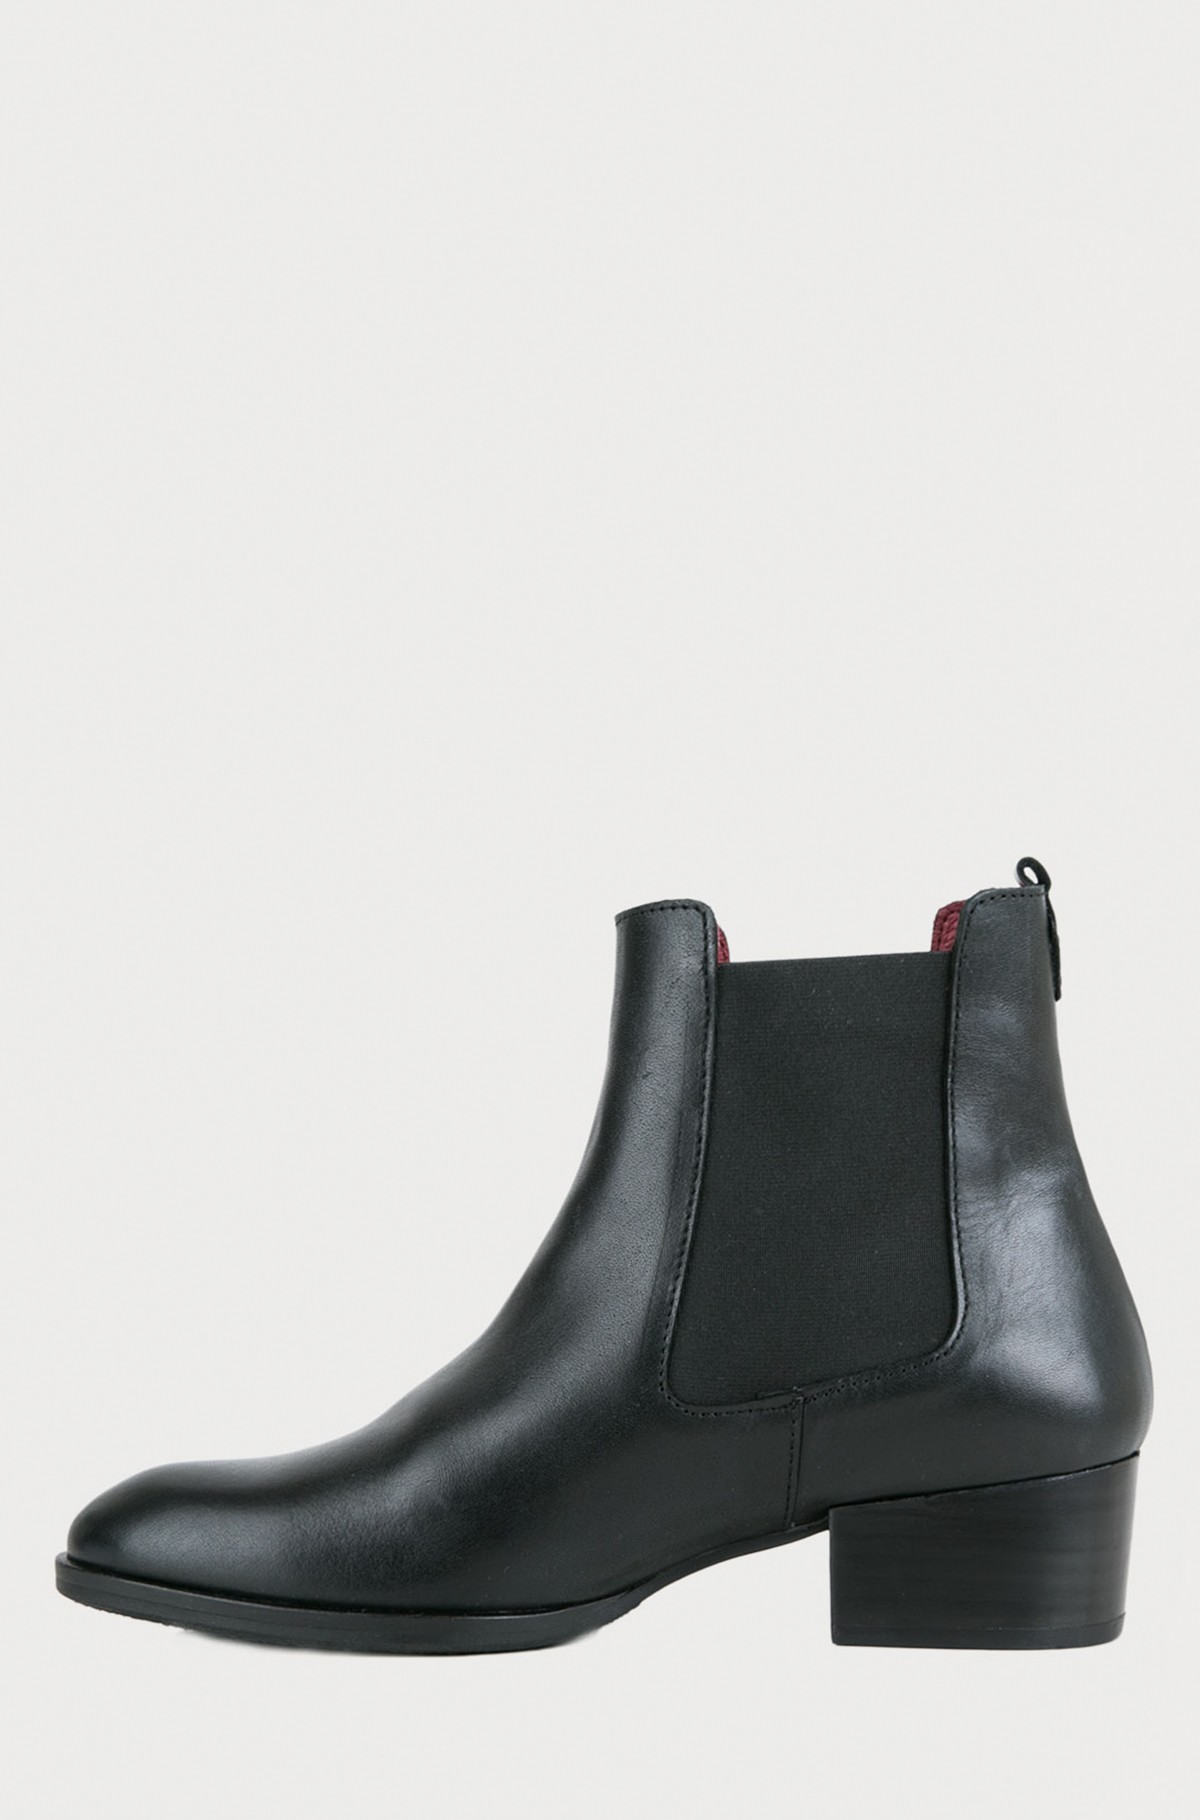 Ankle boots 607 13645101 120-full-2